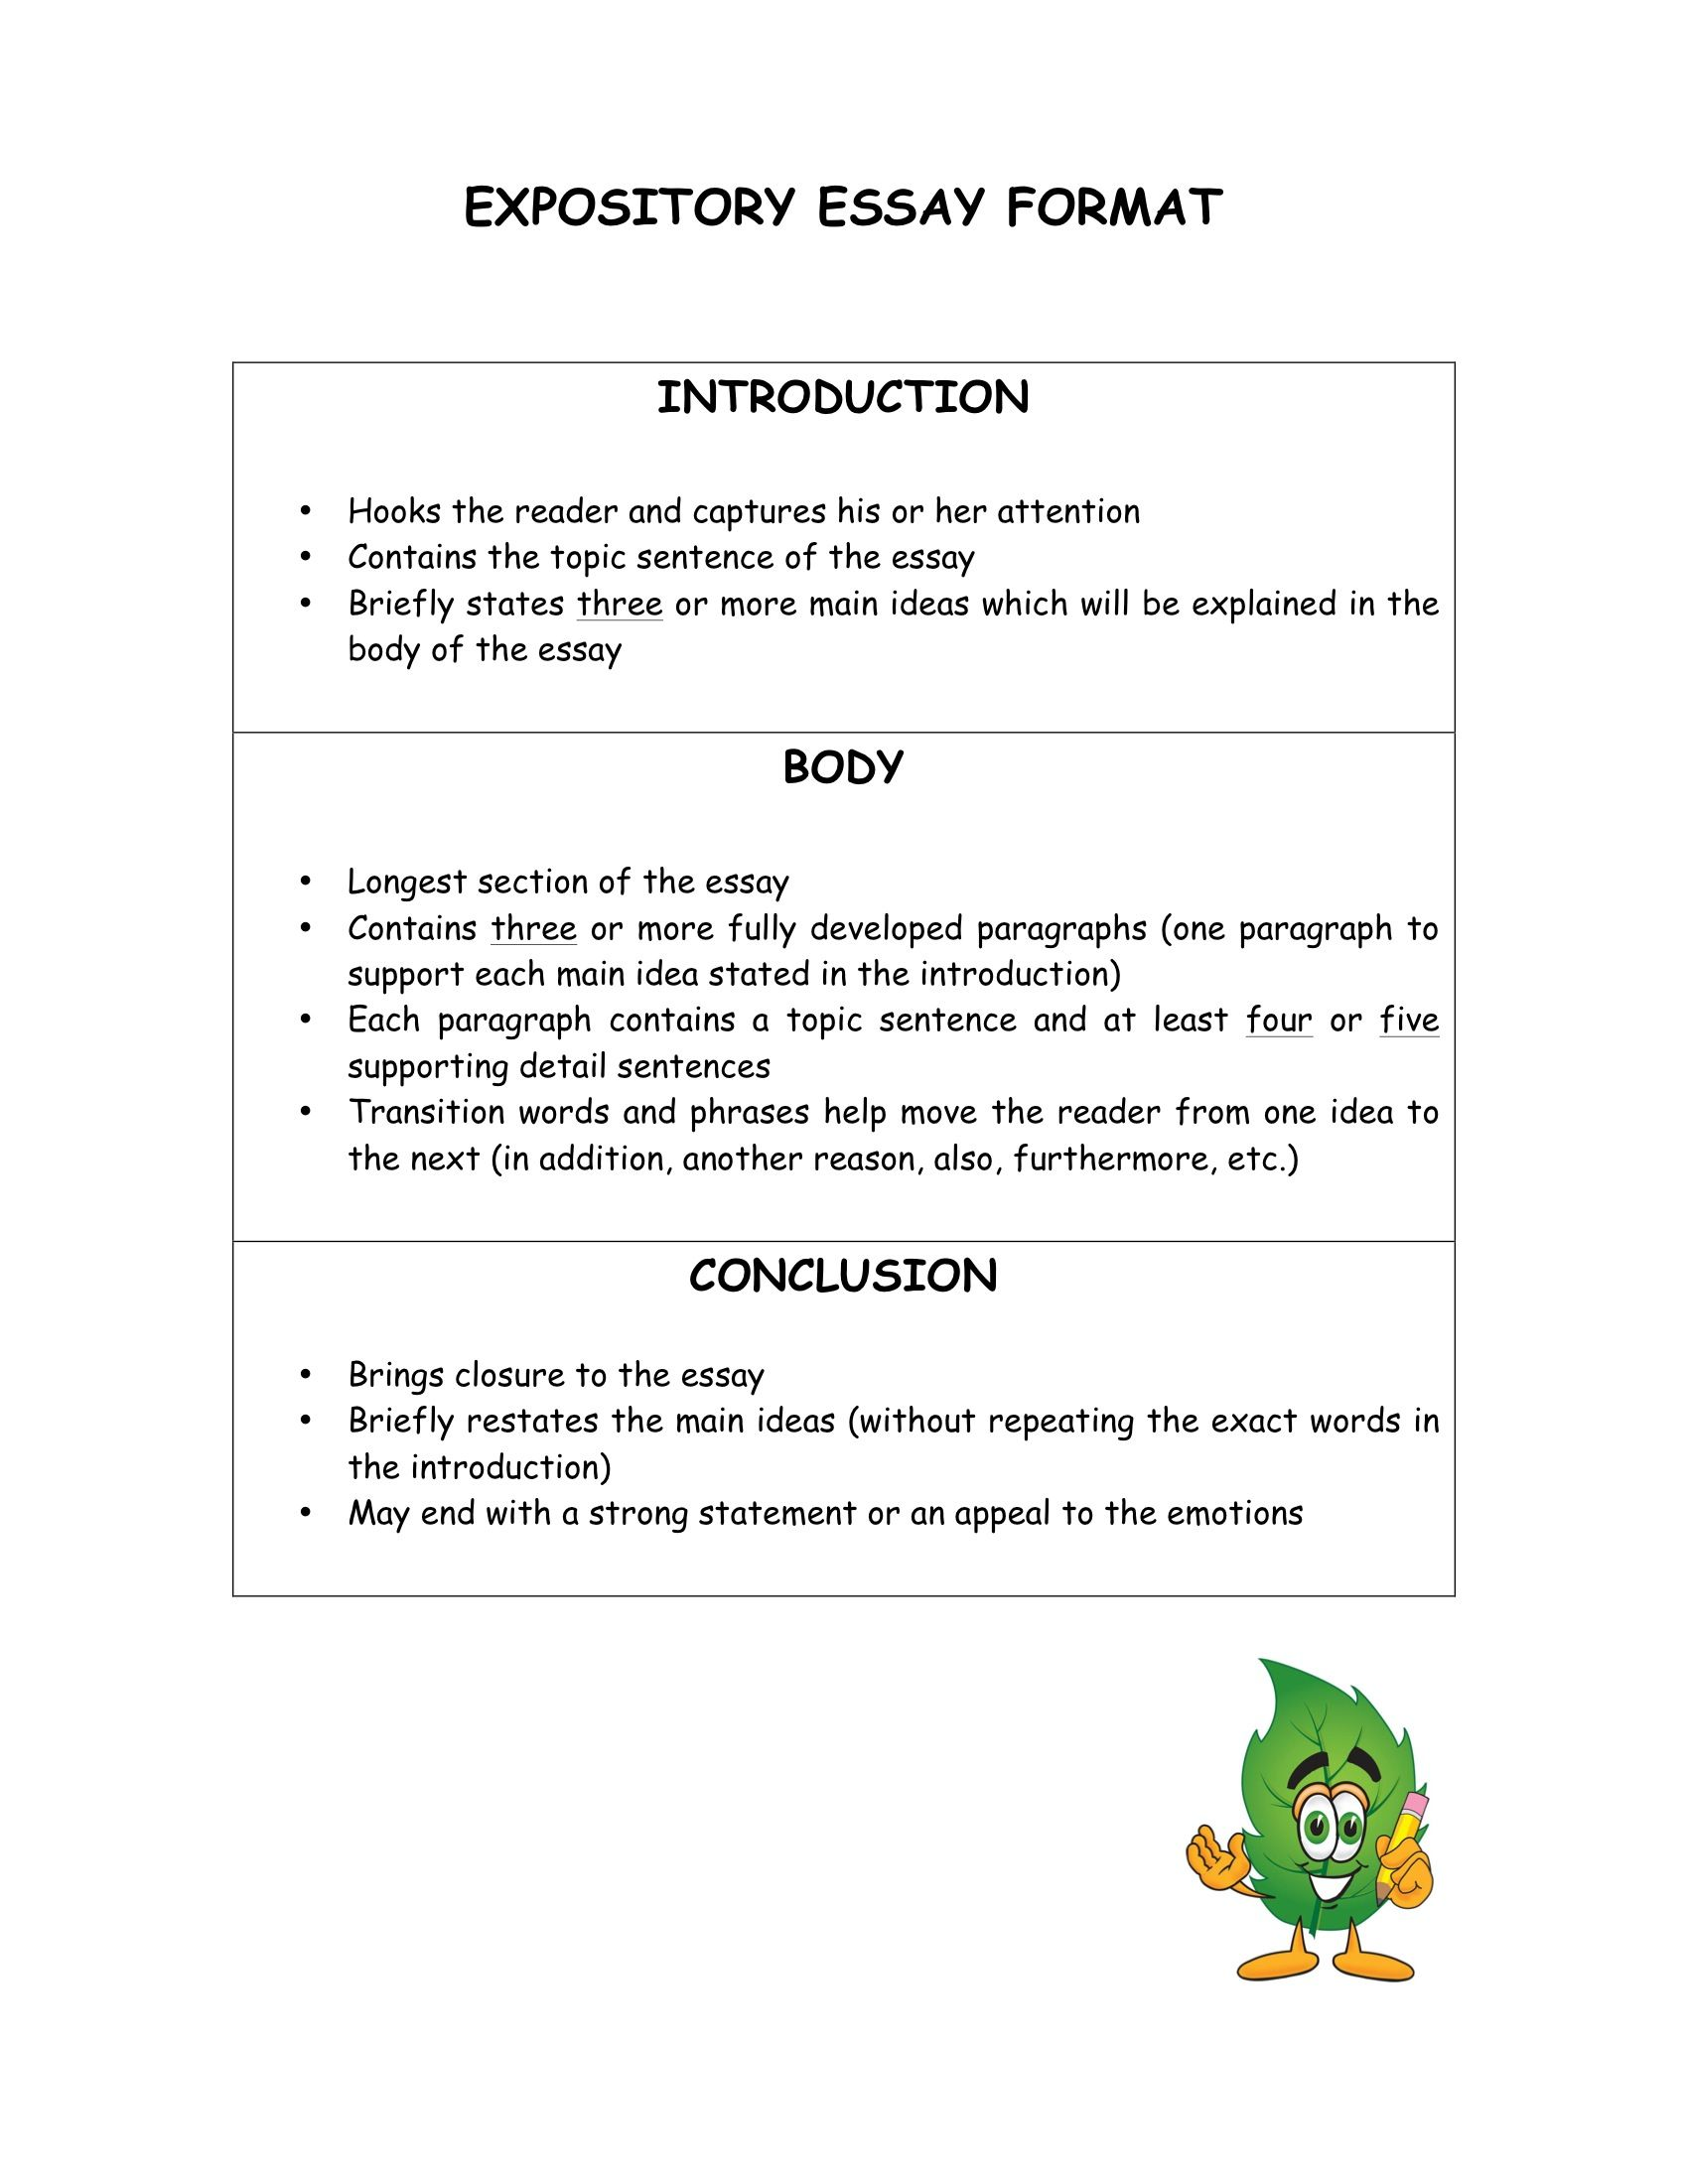 What Is The Format For An Essay Expository Essay Format  Education  Pinterest